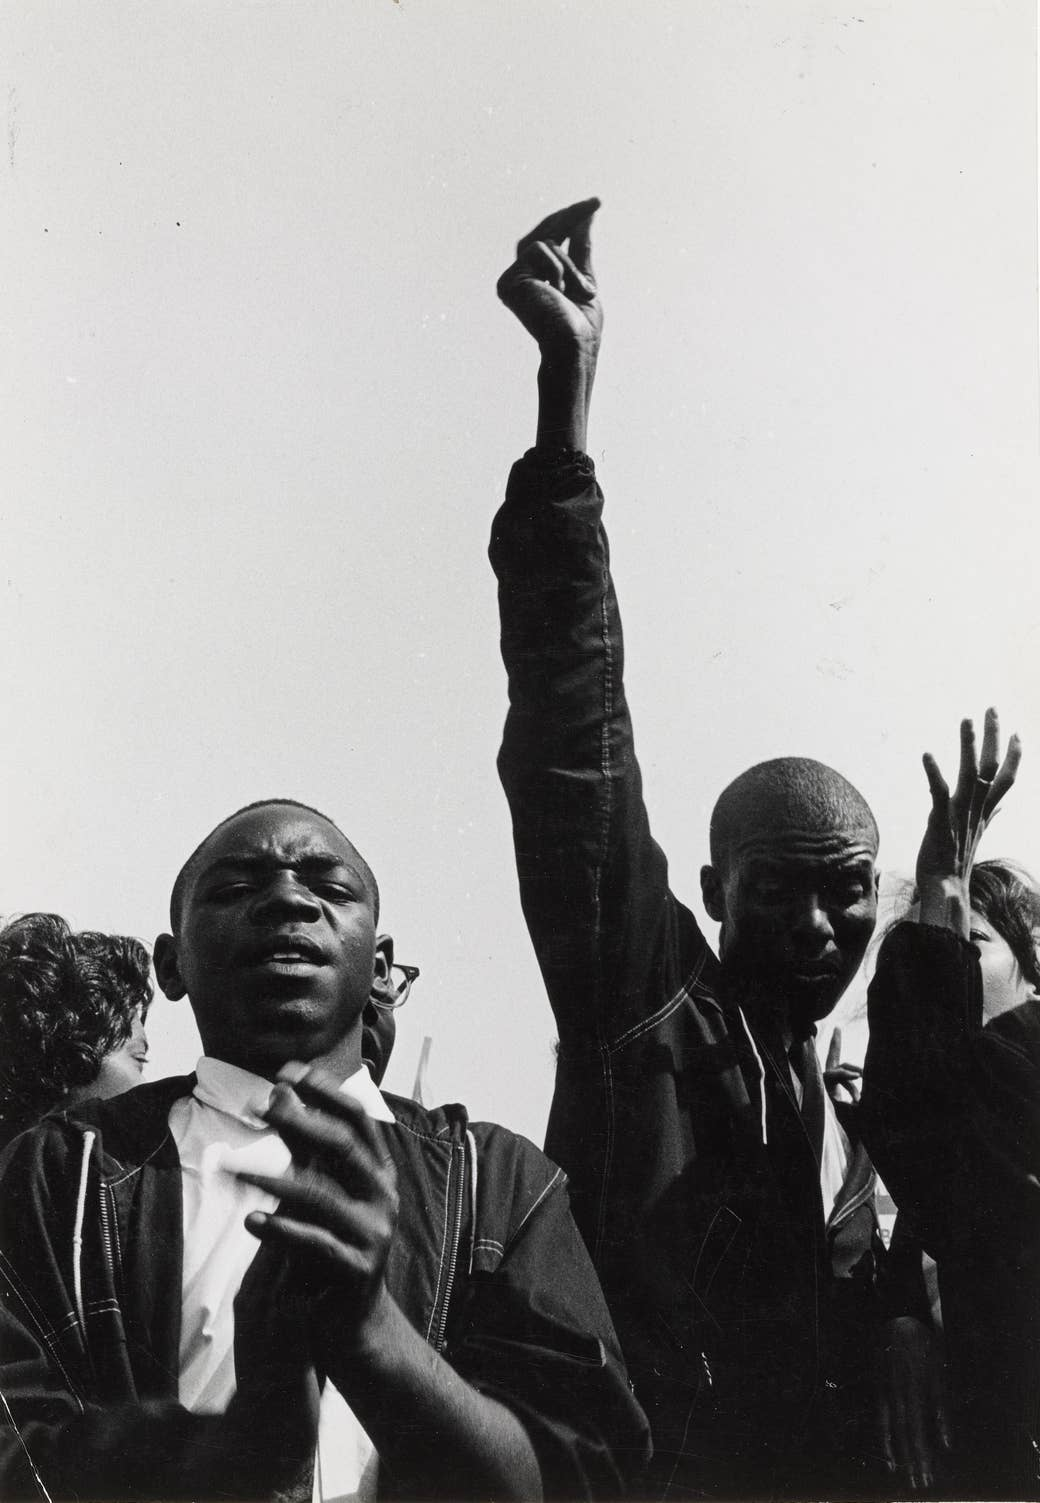 Men clapping and marching, one with his hand in the air